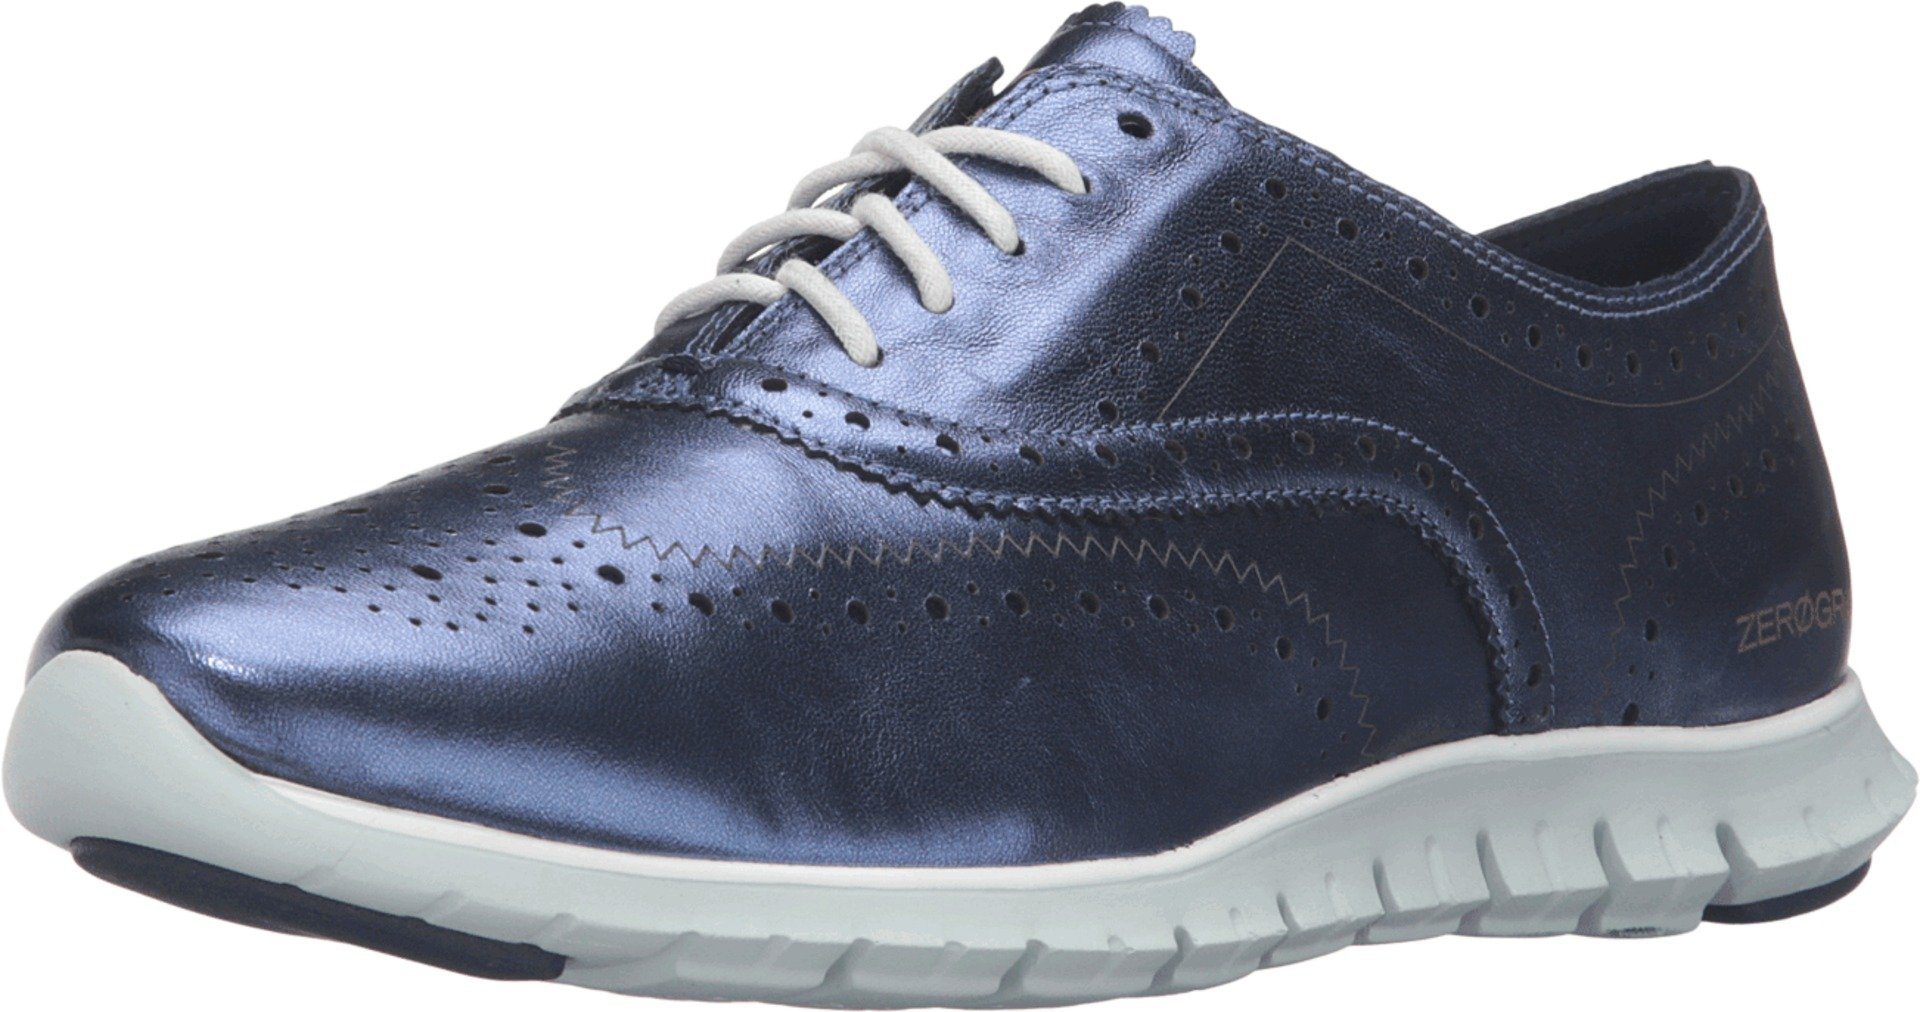 Cole Haan Women's Zerogrand Blazer Blue Wingtip Oxford, Size 6B US